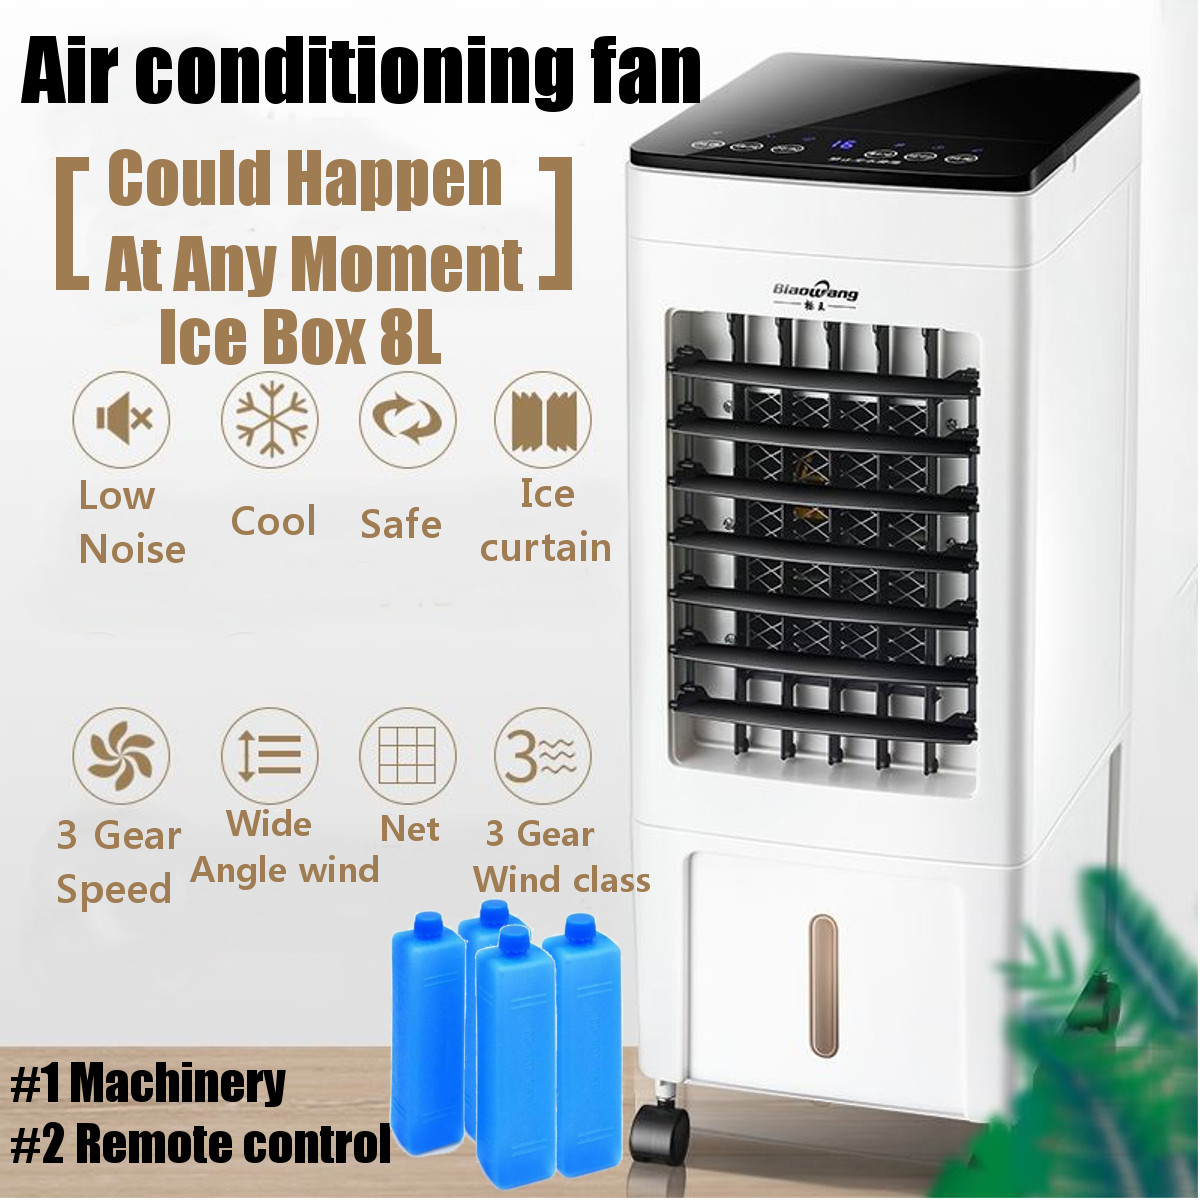 Free Shipping Portable Air Conditioner Conditioning Fan Humidifier Cooler System 220V Air Conditioner Cooling Fan 4 Ice Crystal